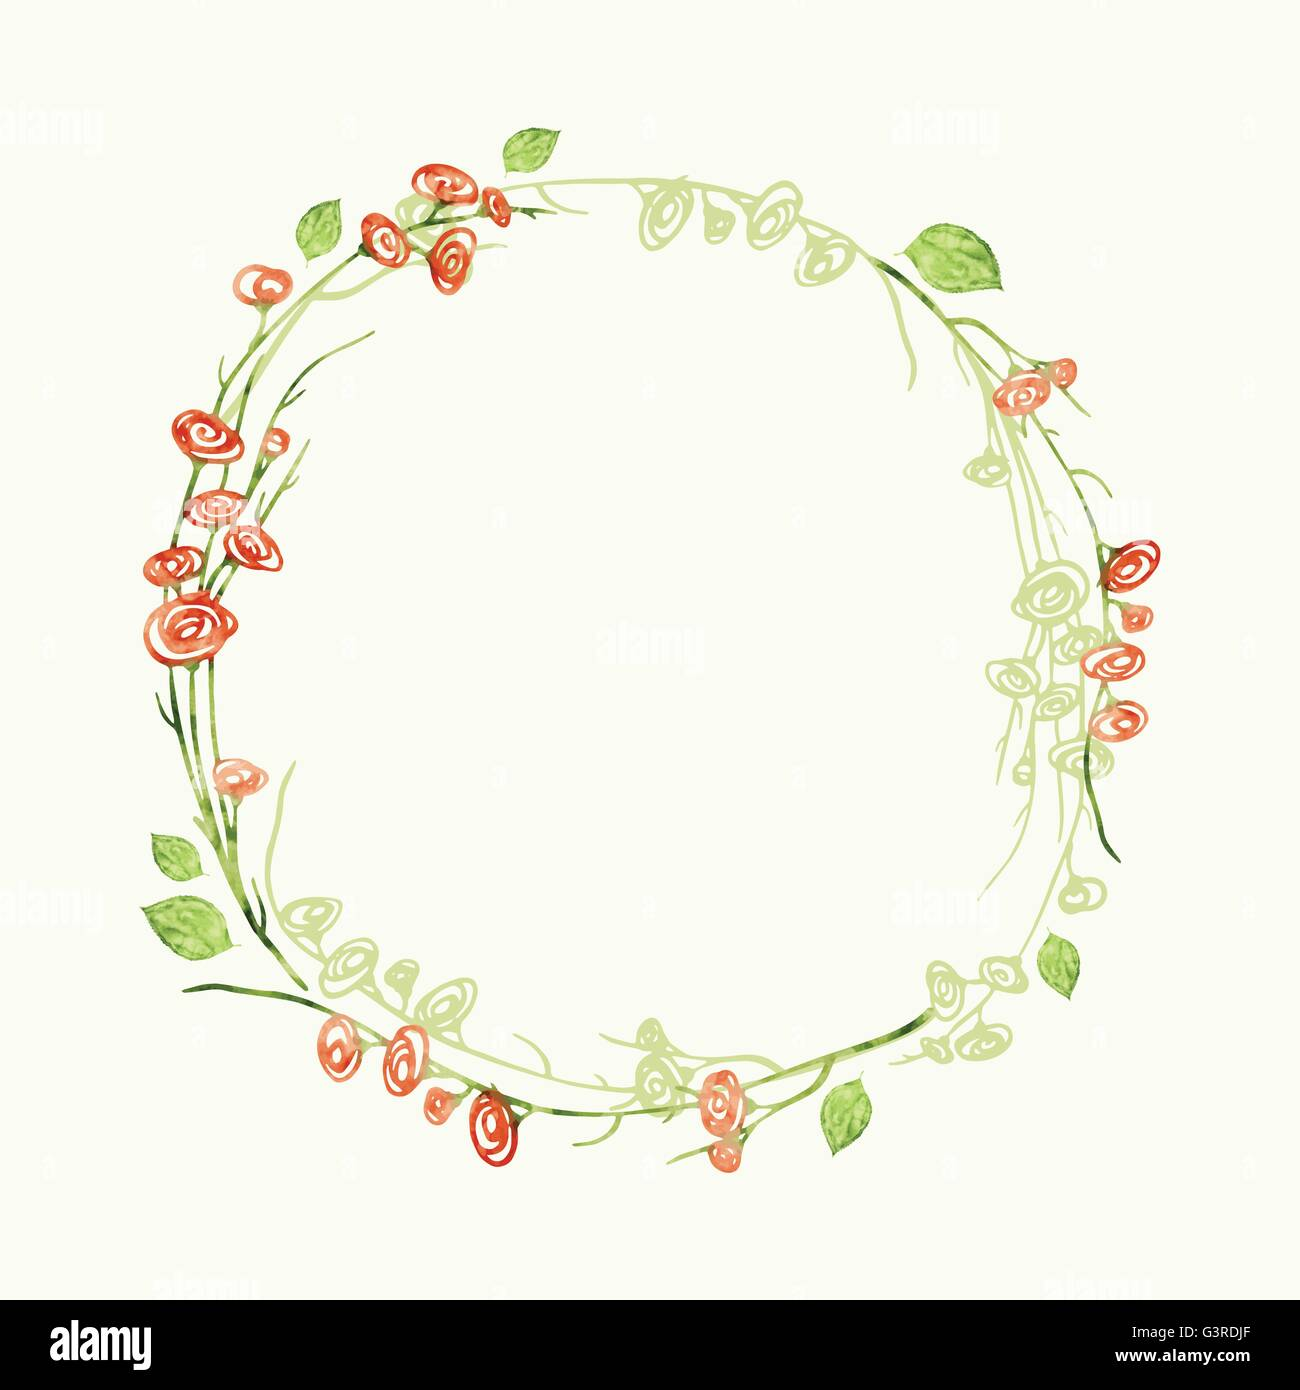 Vector Watercolor Round Floral Frame Hand Draw Romantic Herbal Border